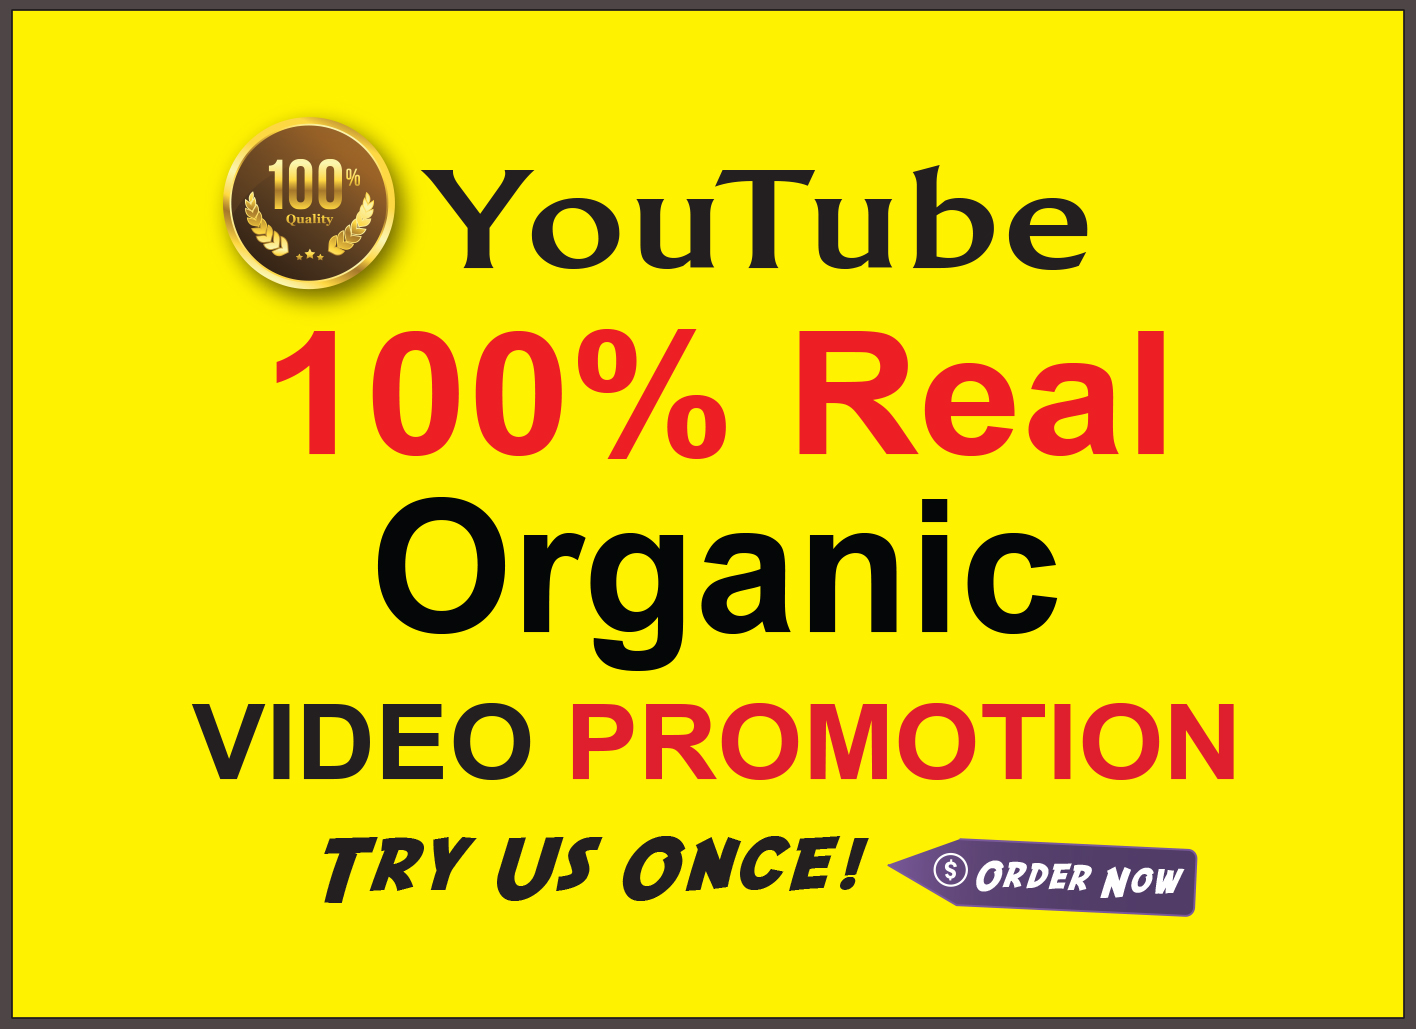 I Provide Real & Organic Youtube Video Promotion